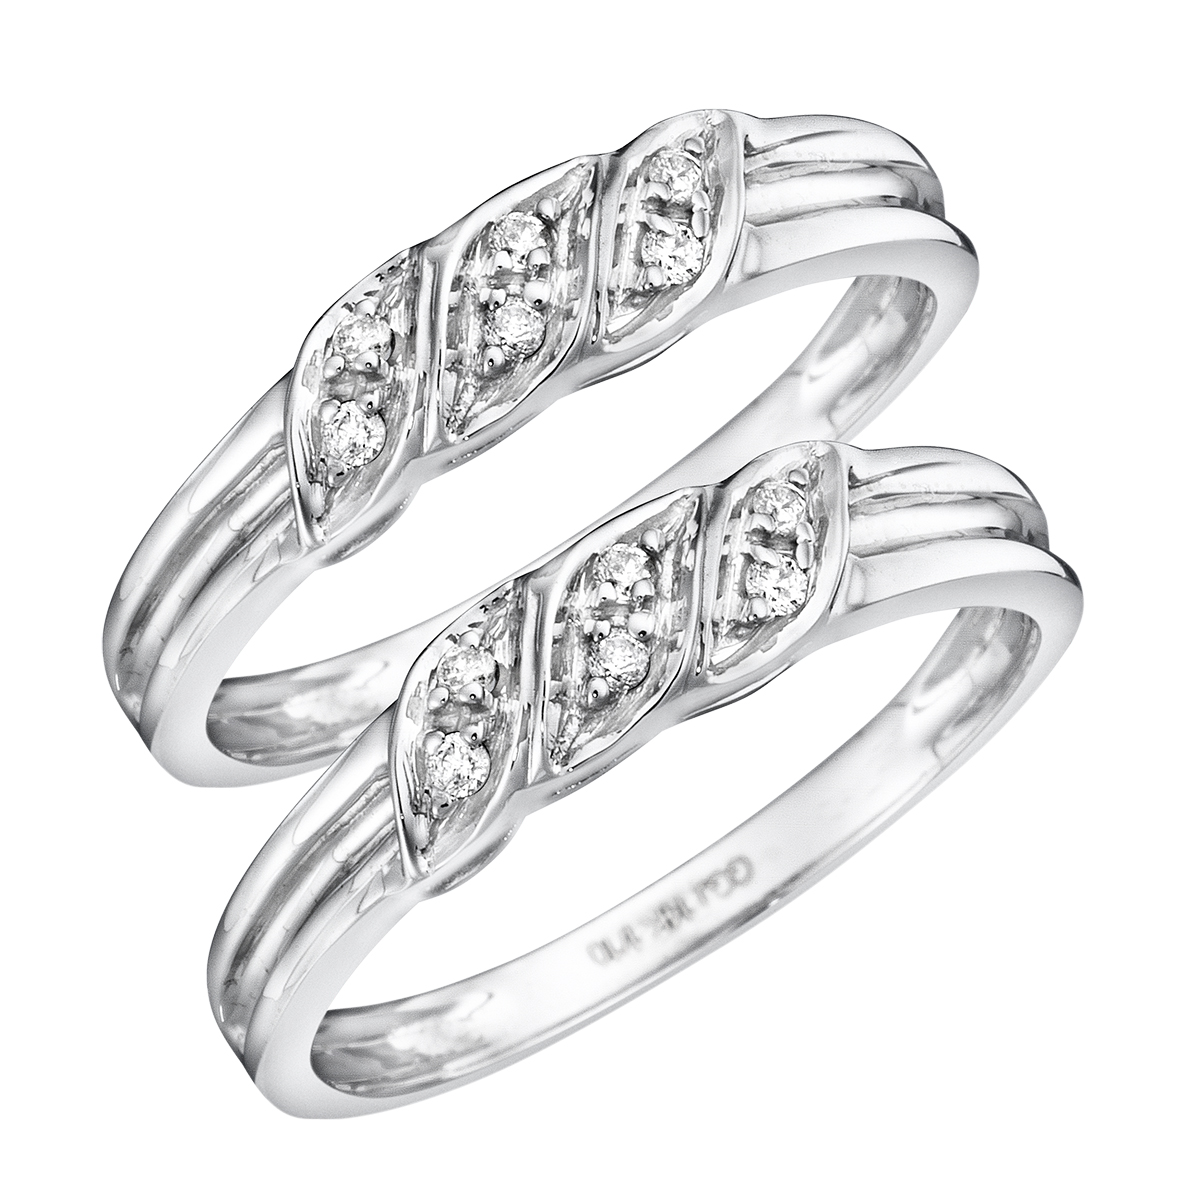 1/8 Carat T.W. Round Cut Ladies Same Sex Wedding Band Set 10K White Gold- Size 8